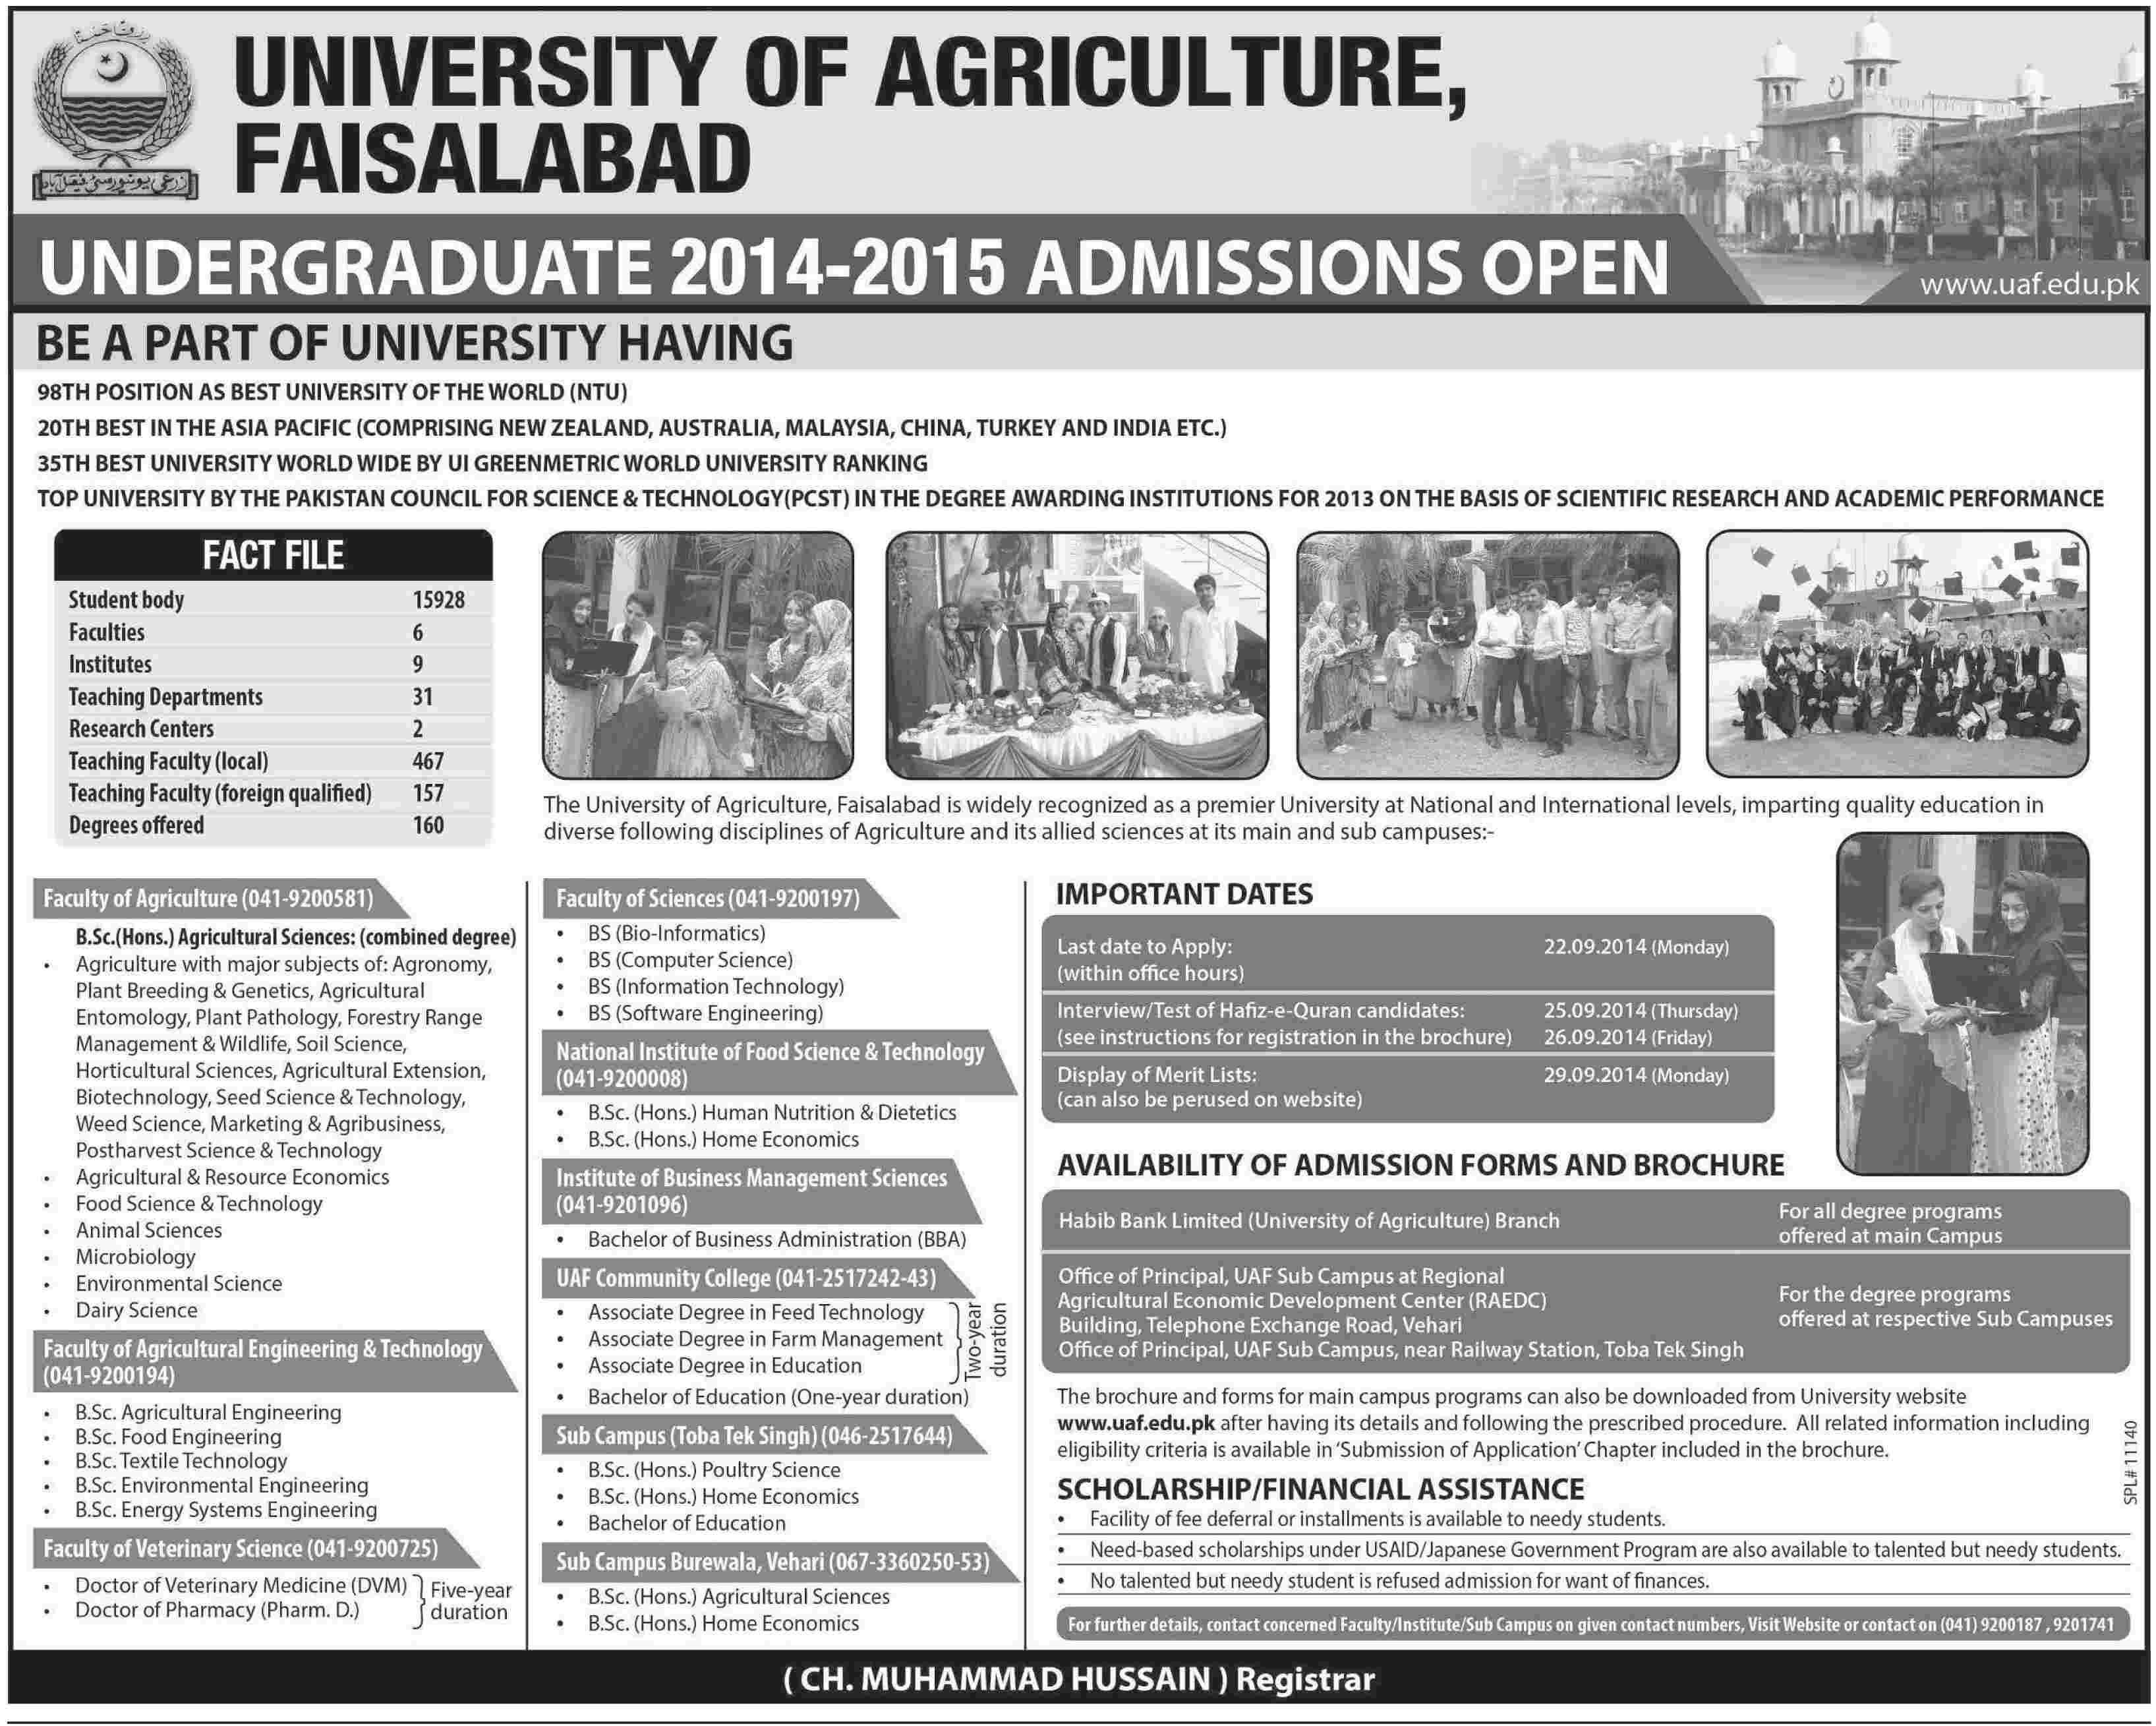 University of Agriculture Faisalabad (UAF) Faisalabad Admission Notice 2014